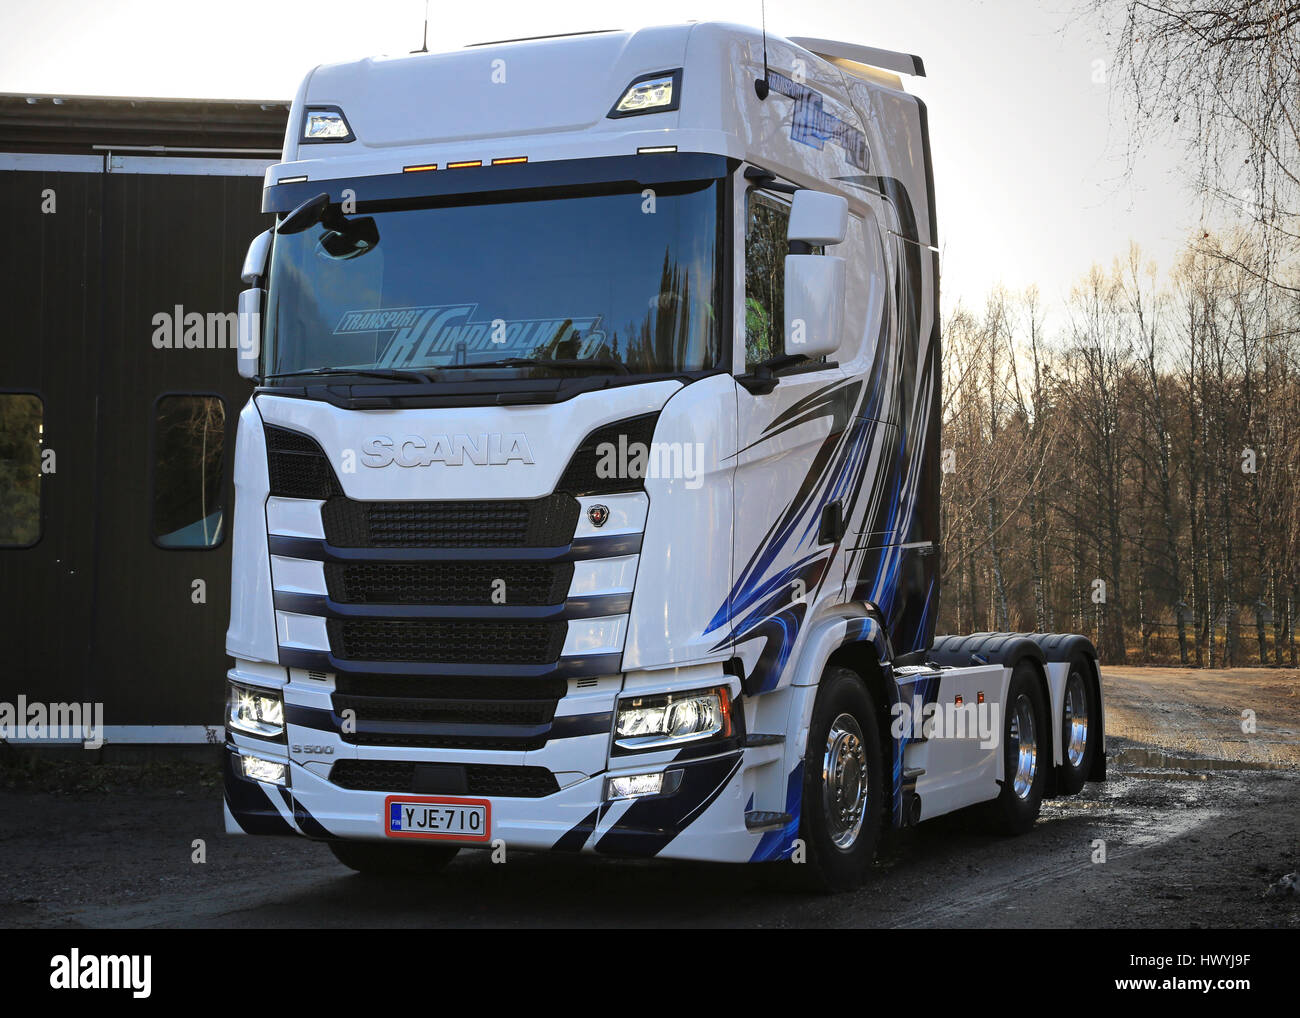 RASEBORG, FINLAND - NOVEMBER 19, 2016: Next Generation Scania S500 of Transport K Lindholm & Co. is being moved - Stock Image